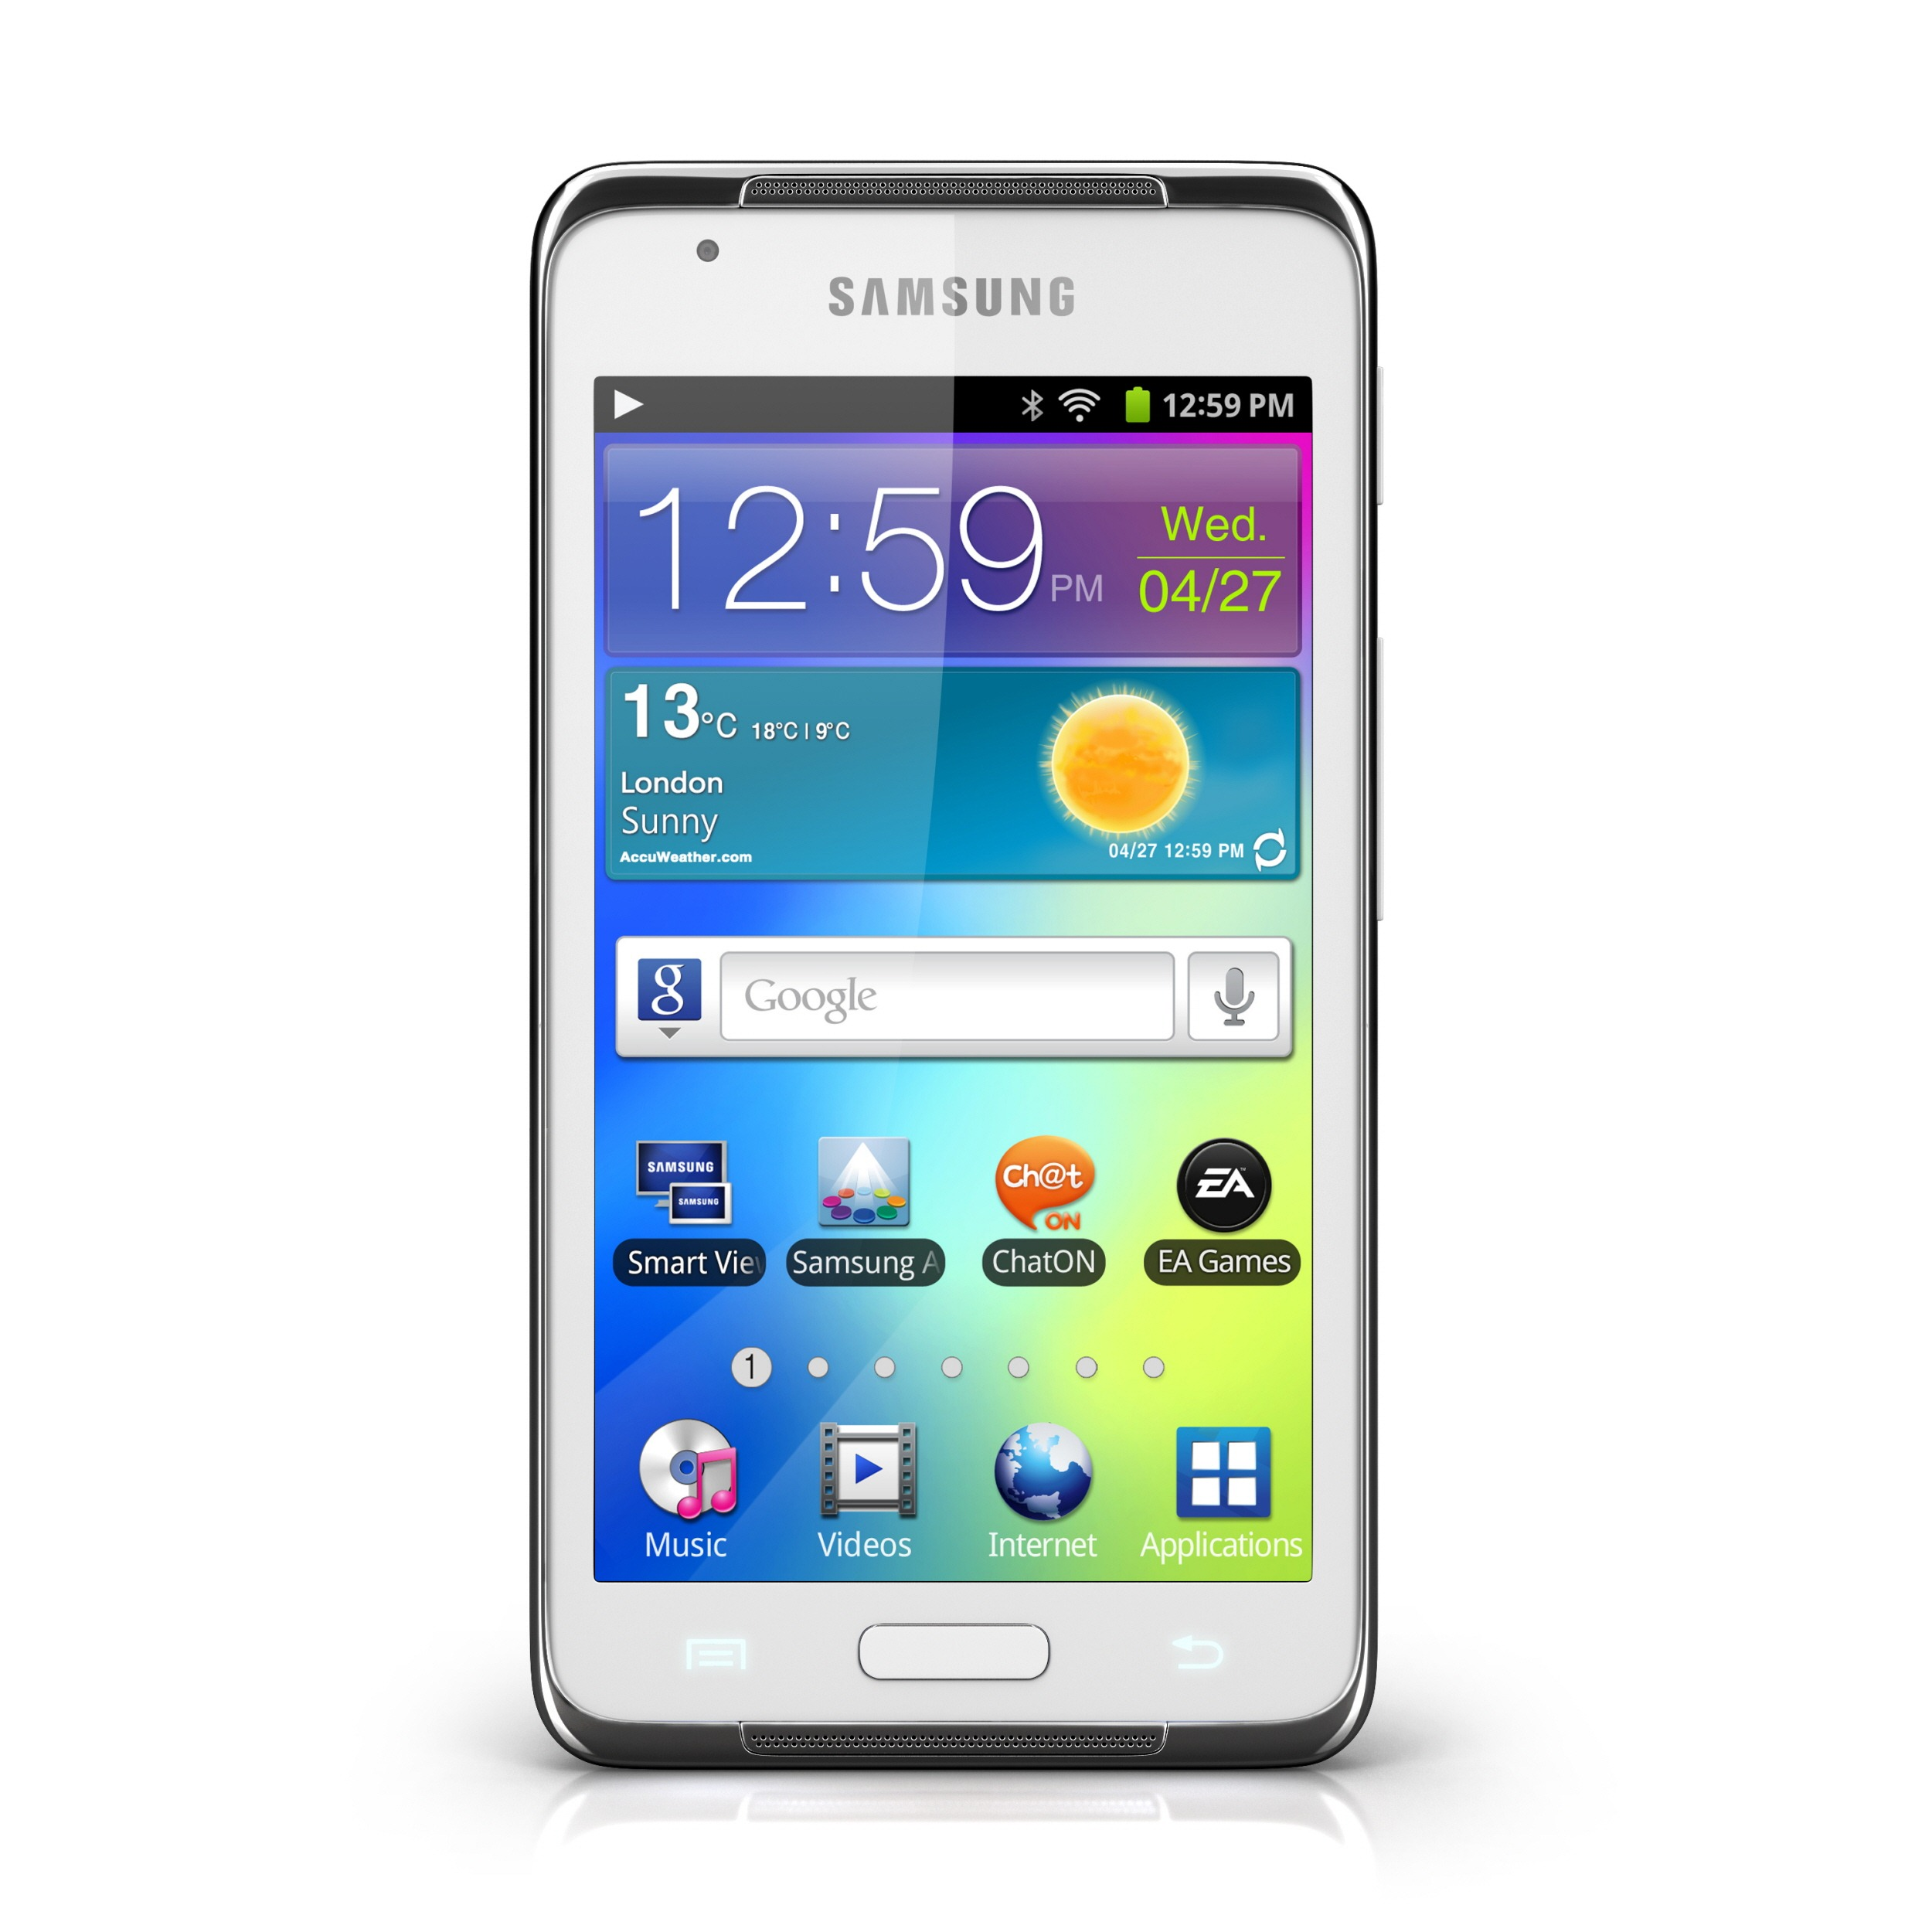 MWC 2012] Samsung Announces Galaxy S WiFi 4.2, For The Android ...